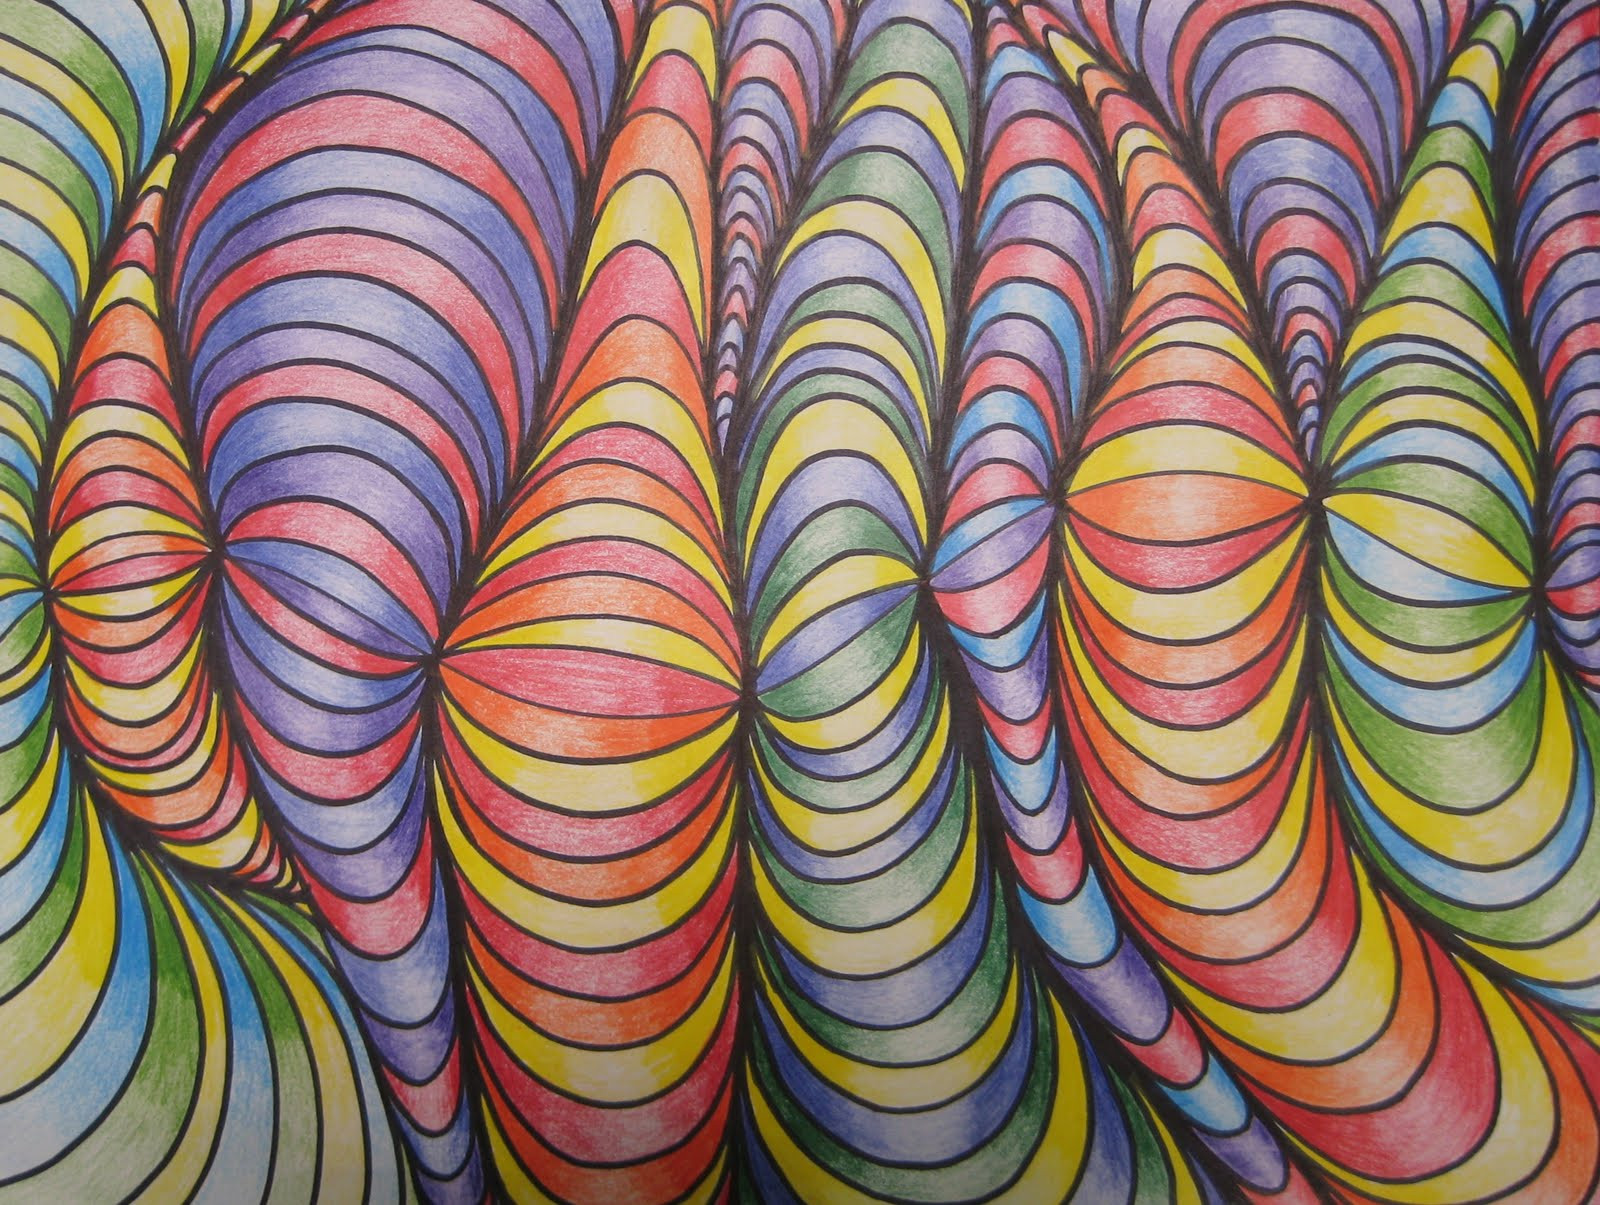 Best ideas about 3D Art Projects For Kids . Save or Pin Line Designs with Shading • TeachKidsArt Now.